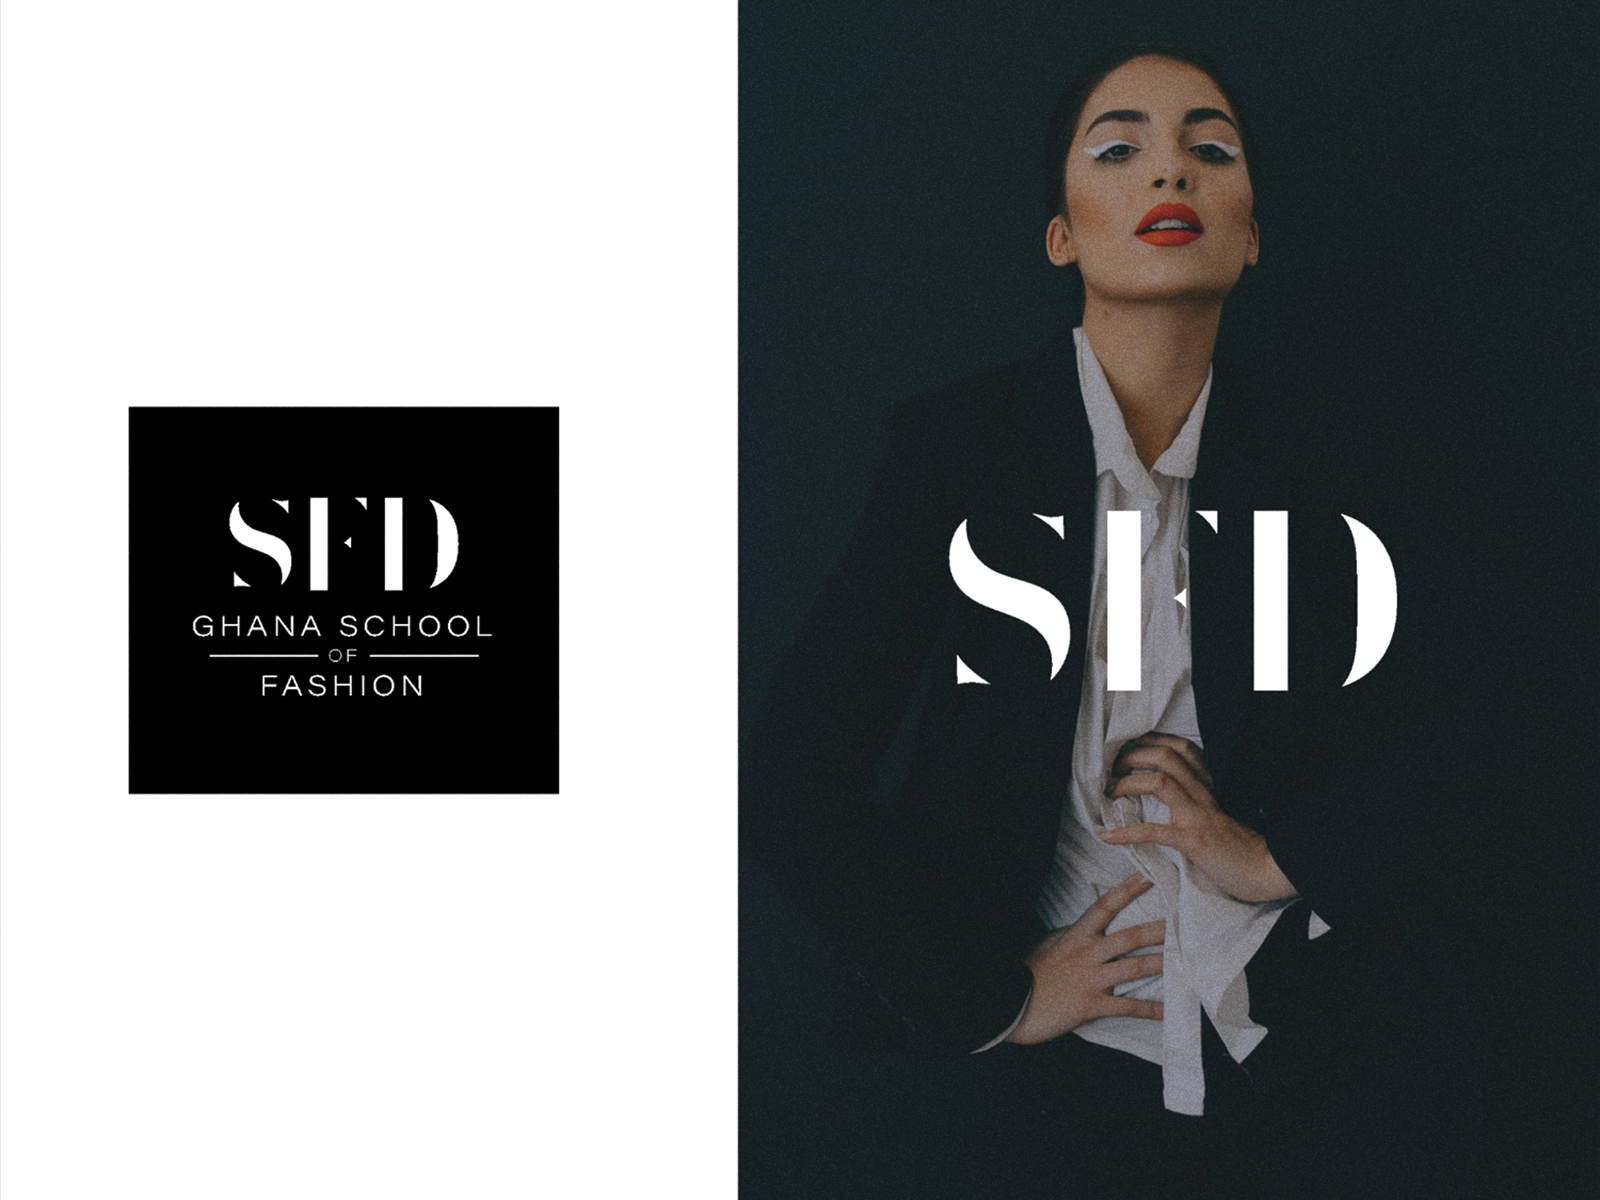 Sfd Ghana School Of Fashion By Negru Andrei On Dribbble